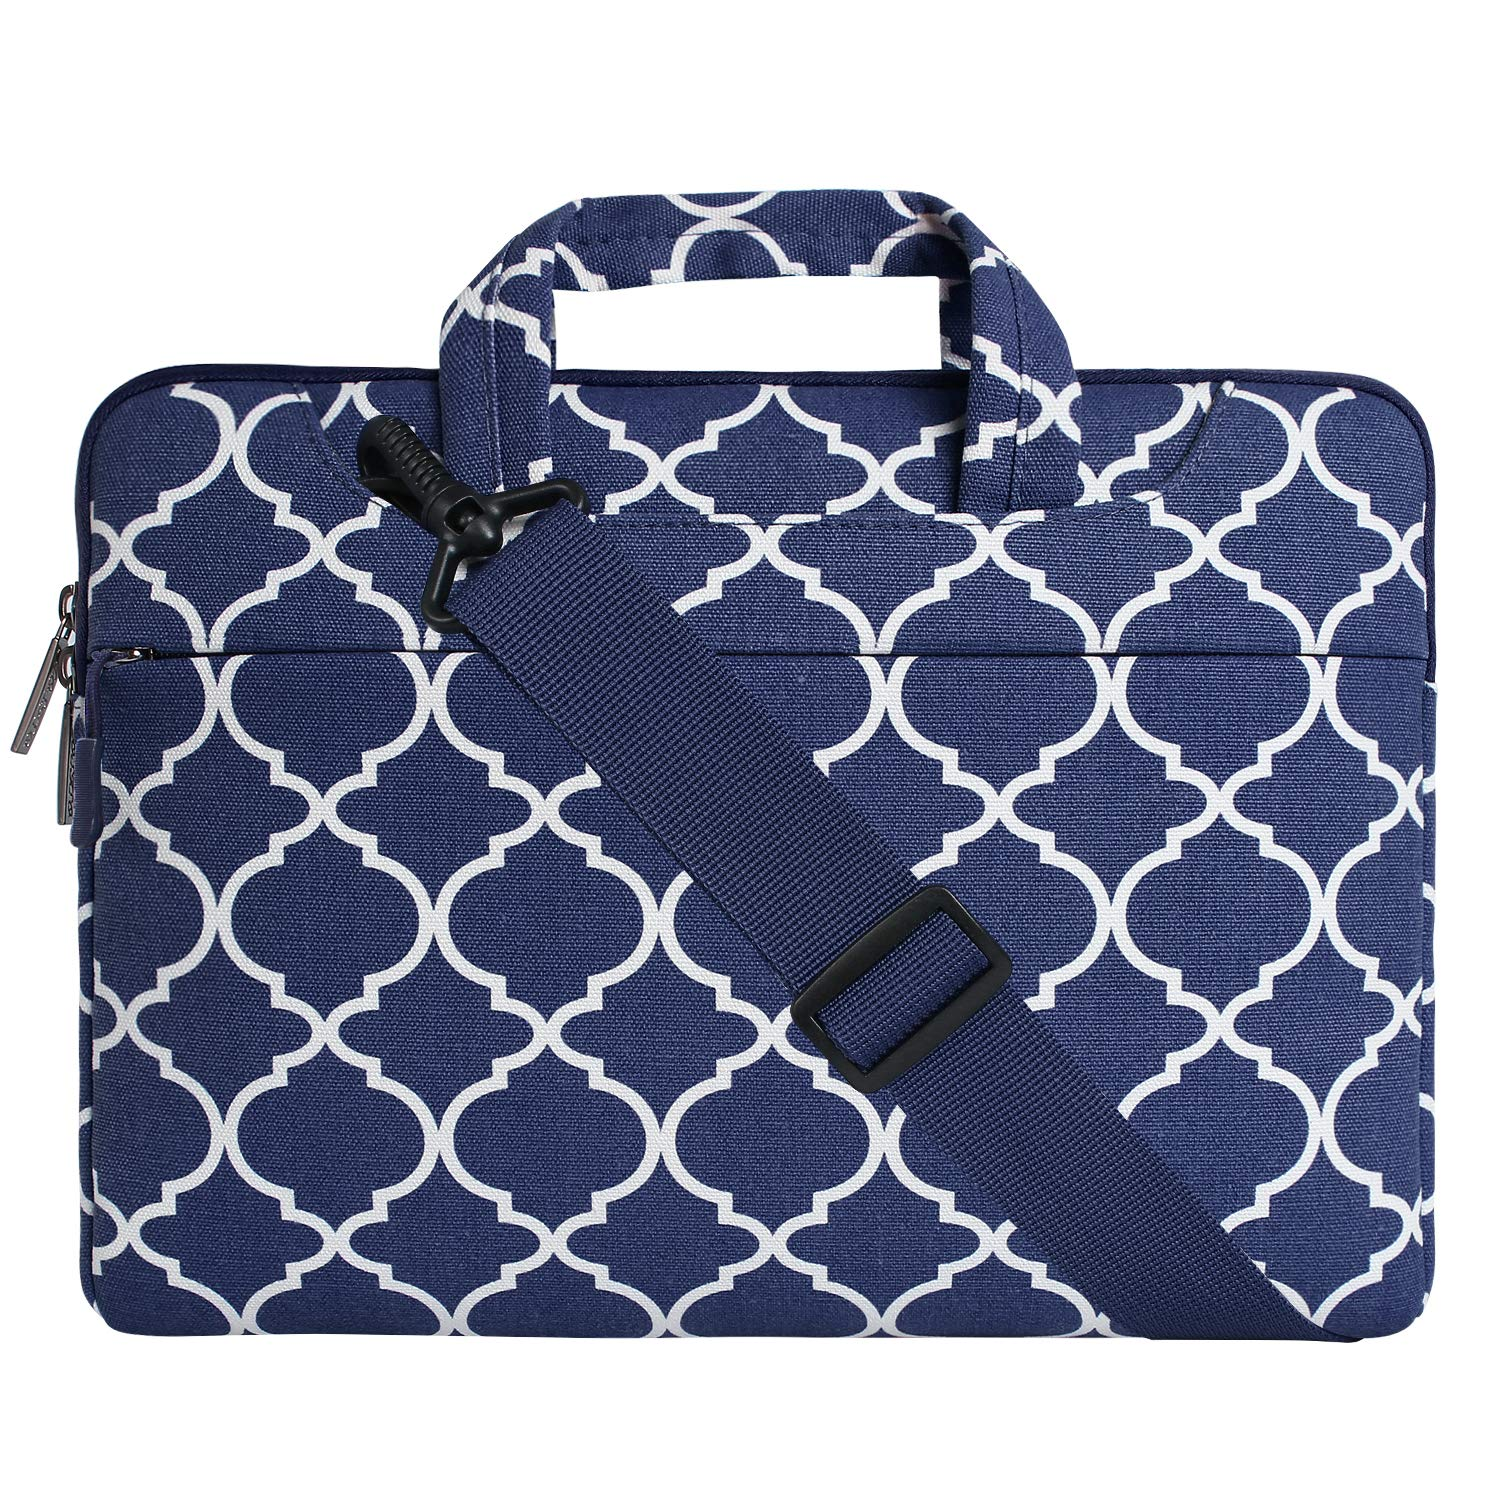 Mosiso Quatrefoil Style Fabric Laptop Sleeve Case Cover Bag with Shoulder Strap for 15-15.6 Inch MacBook Pro, Notebook Computer, Wine Red